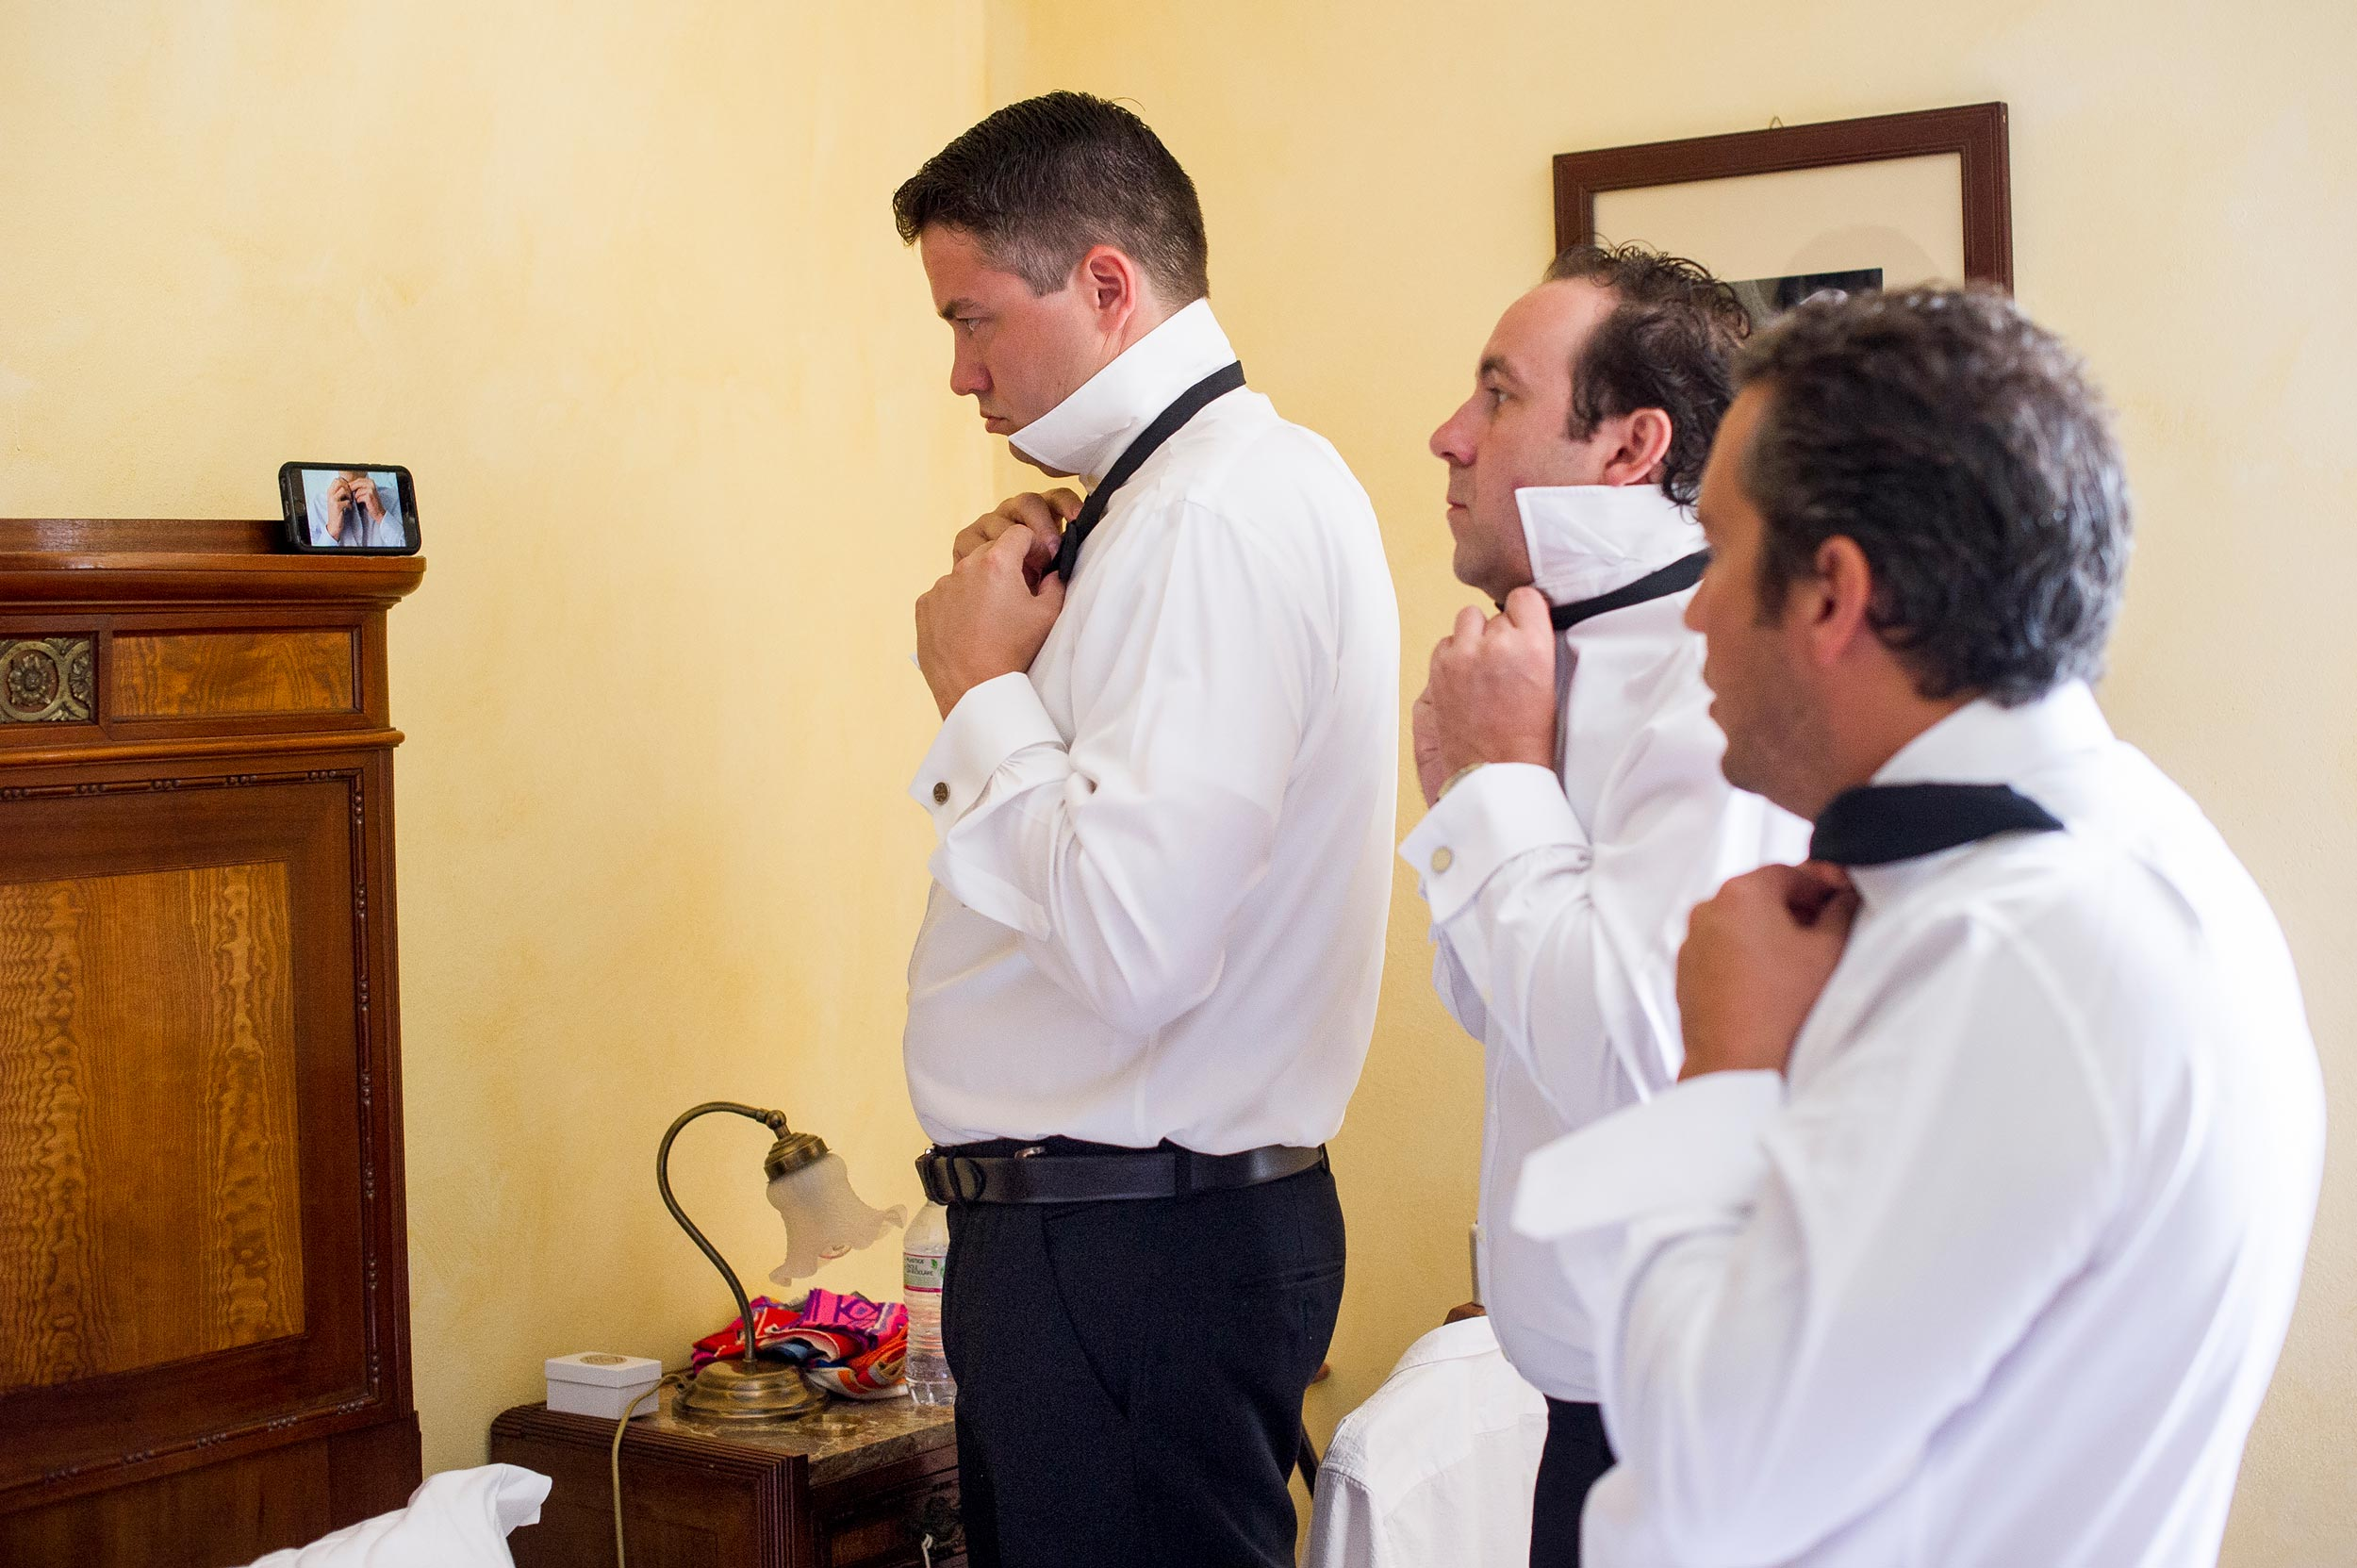 groomsmen-trying-to-learn-from-youtube-how-to-make-the-bow-tie.jpg